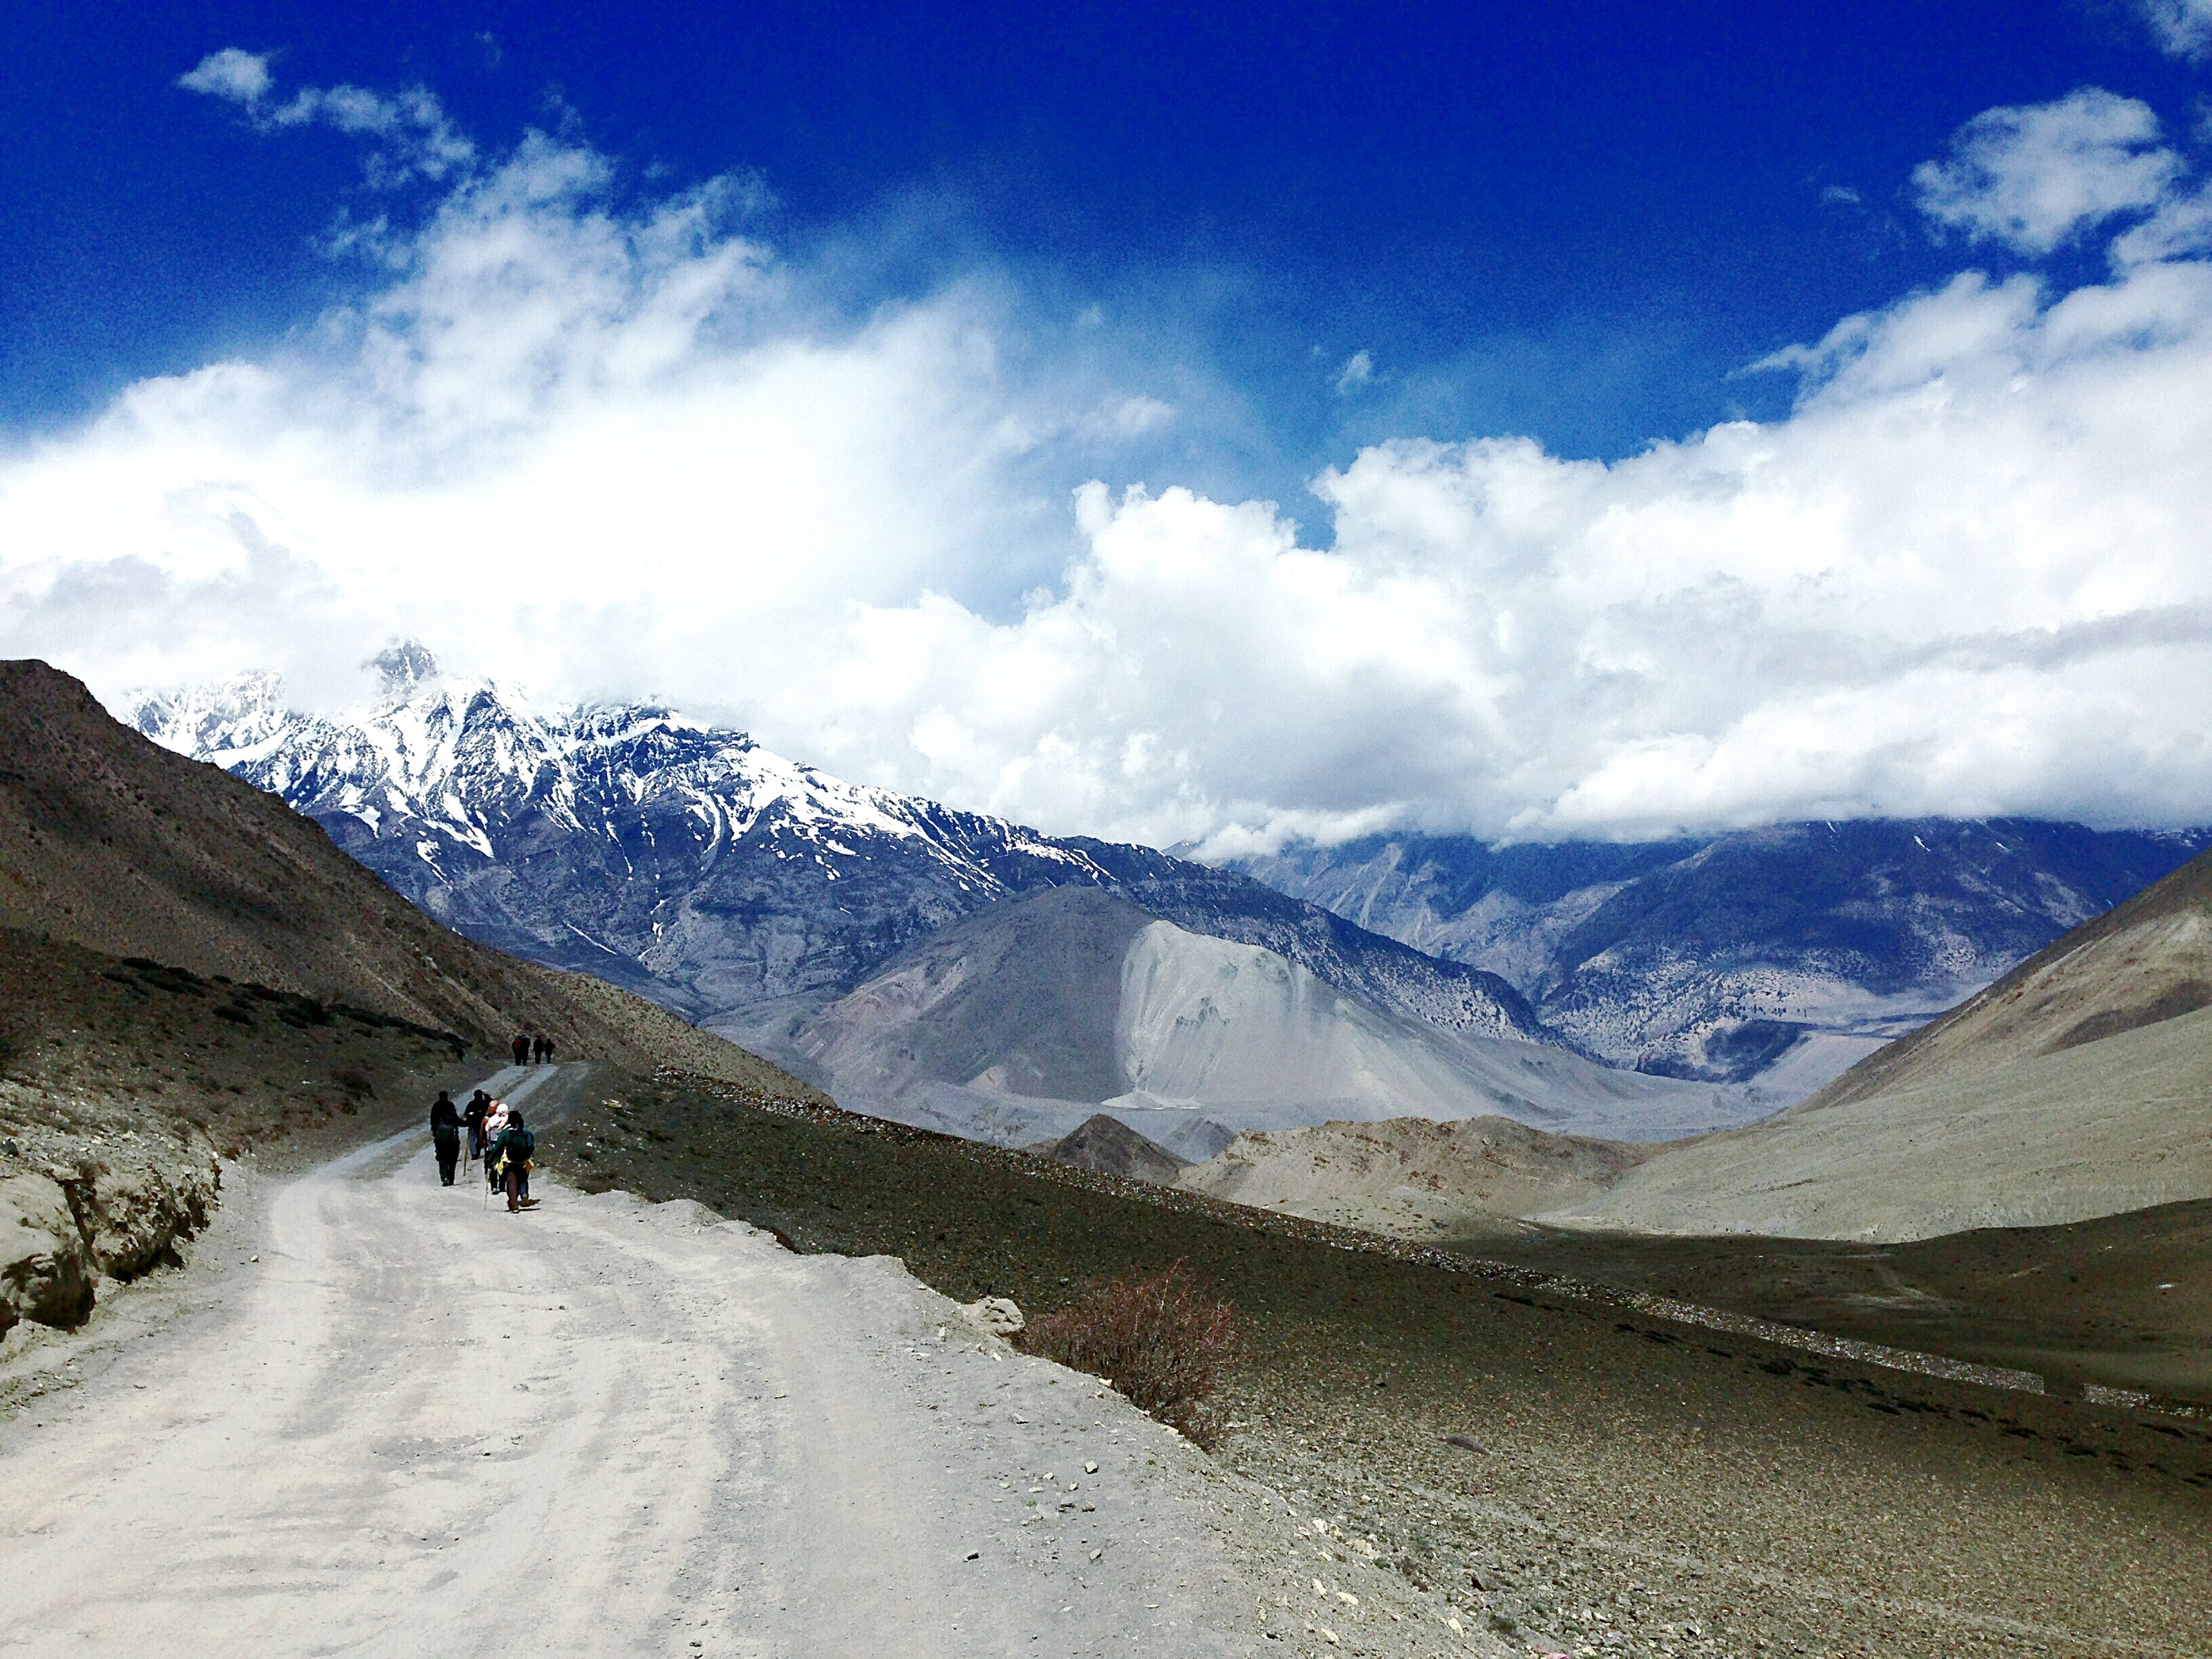 mountain, snow, winter, cold temperature, mountain range, sky, leisure activity, season, snowcapped mountain, tranquil scene, lifestyles, men, scenics, beauty in nature, tranquility, landscape, cloud - sky, weather